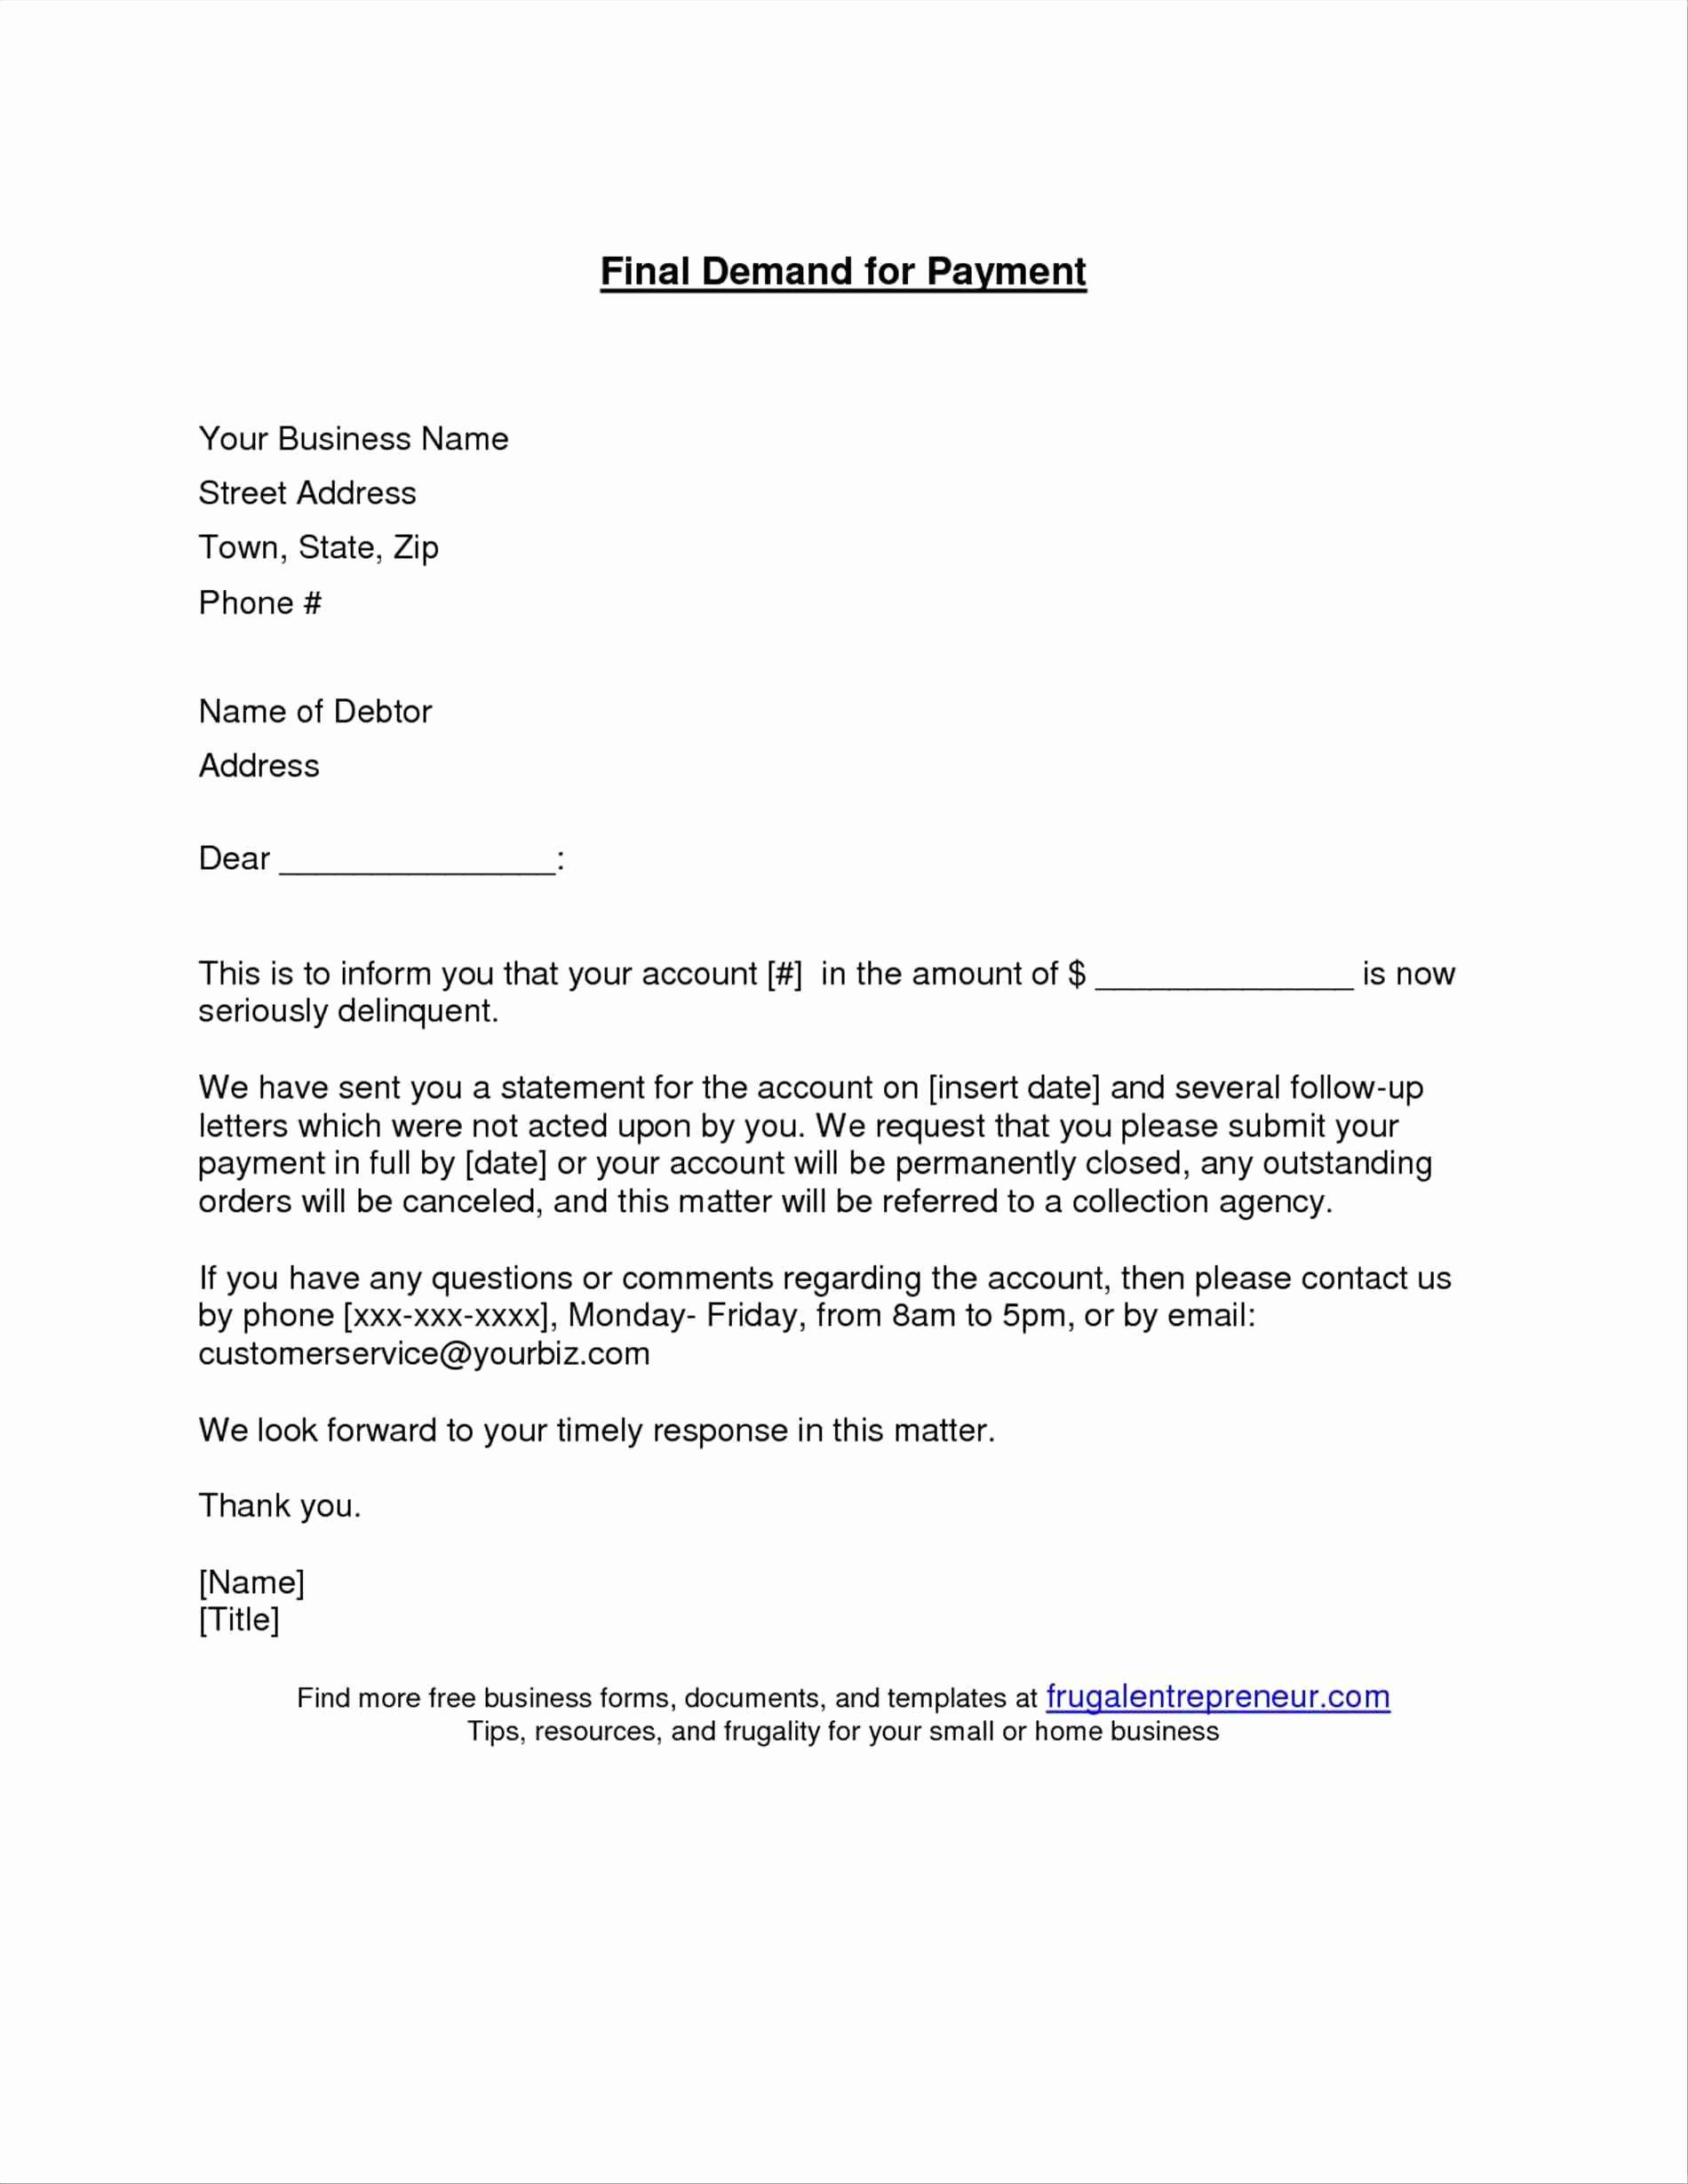 Demand Letter Promissory Note Template - Promissory Note Template Arizona Elegant format Demand Letter